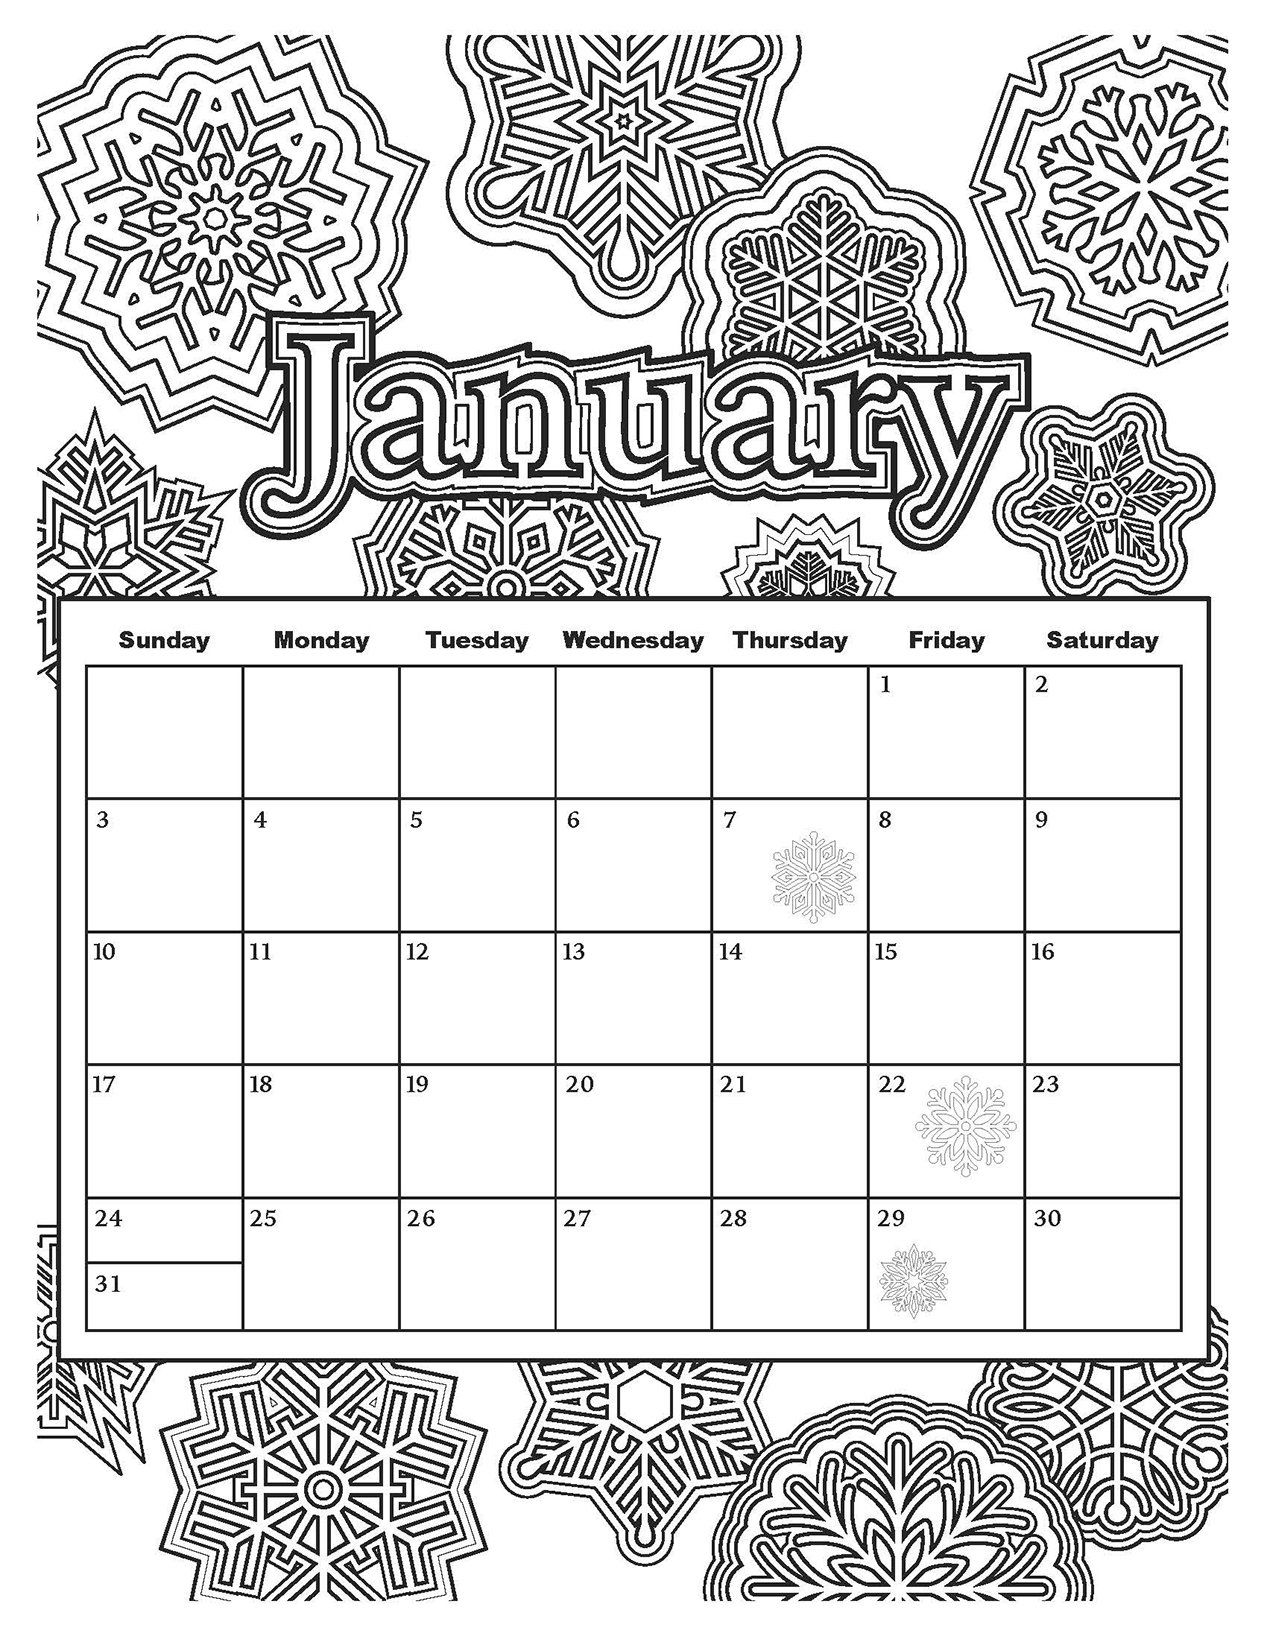 httpparadecom409706paradefree download free adult coloring pagescoloring